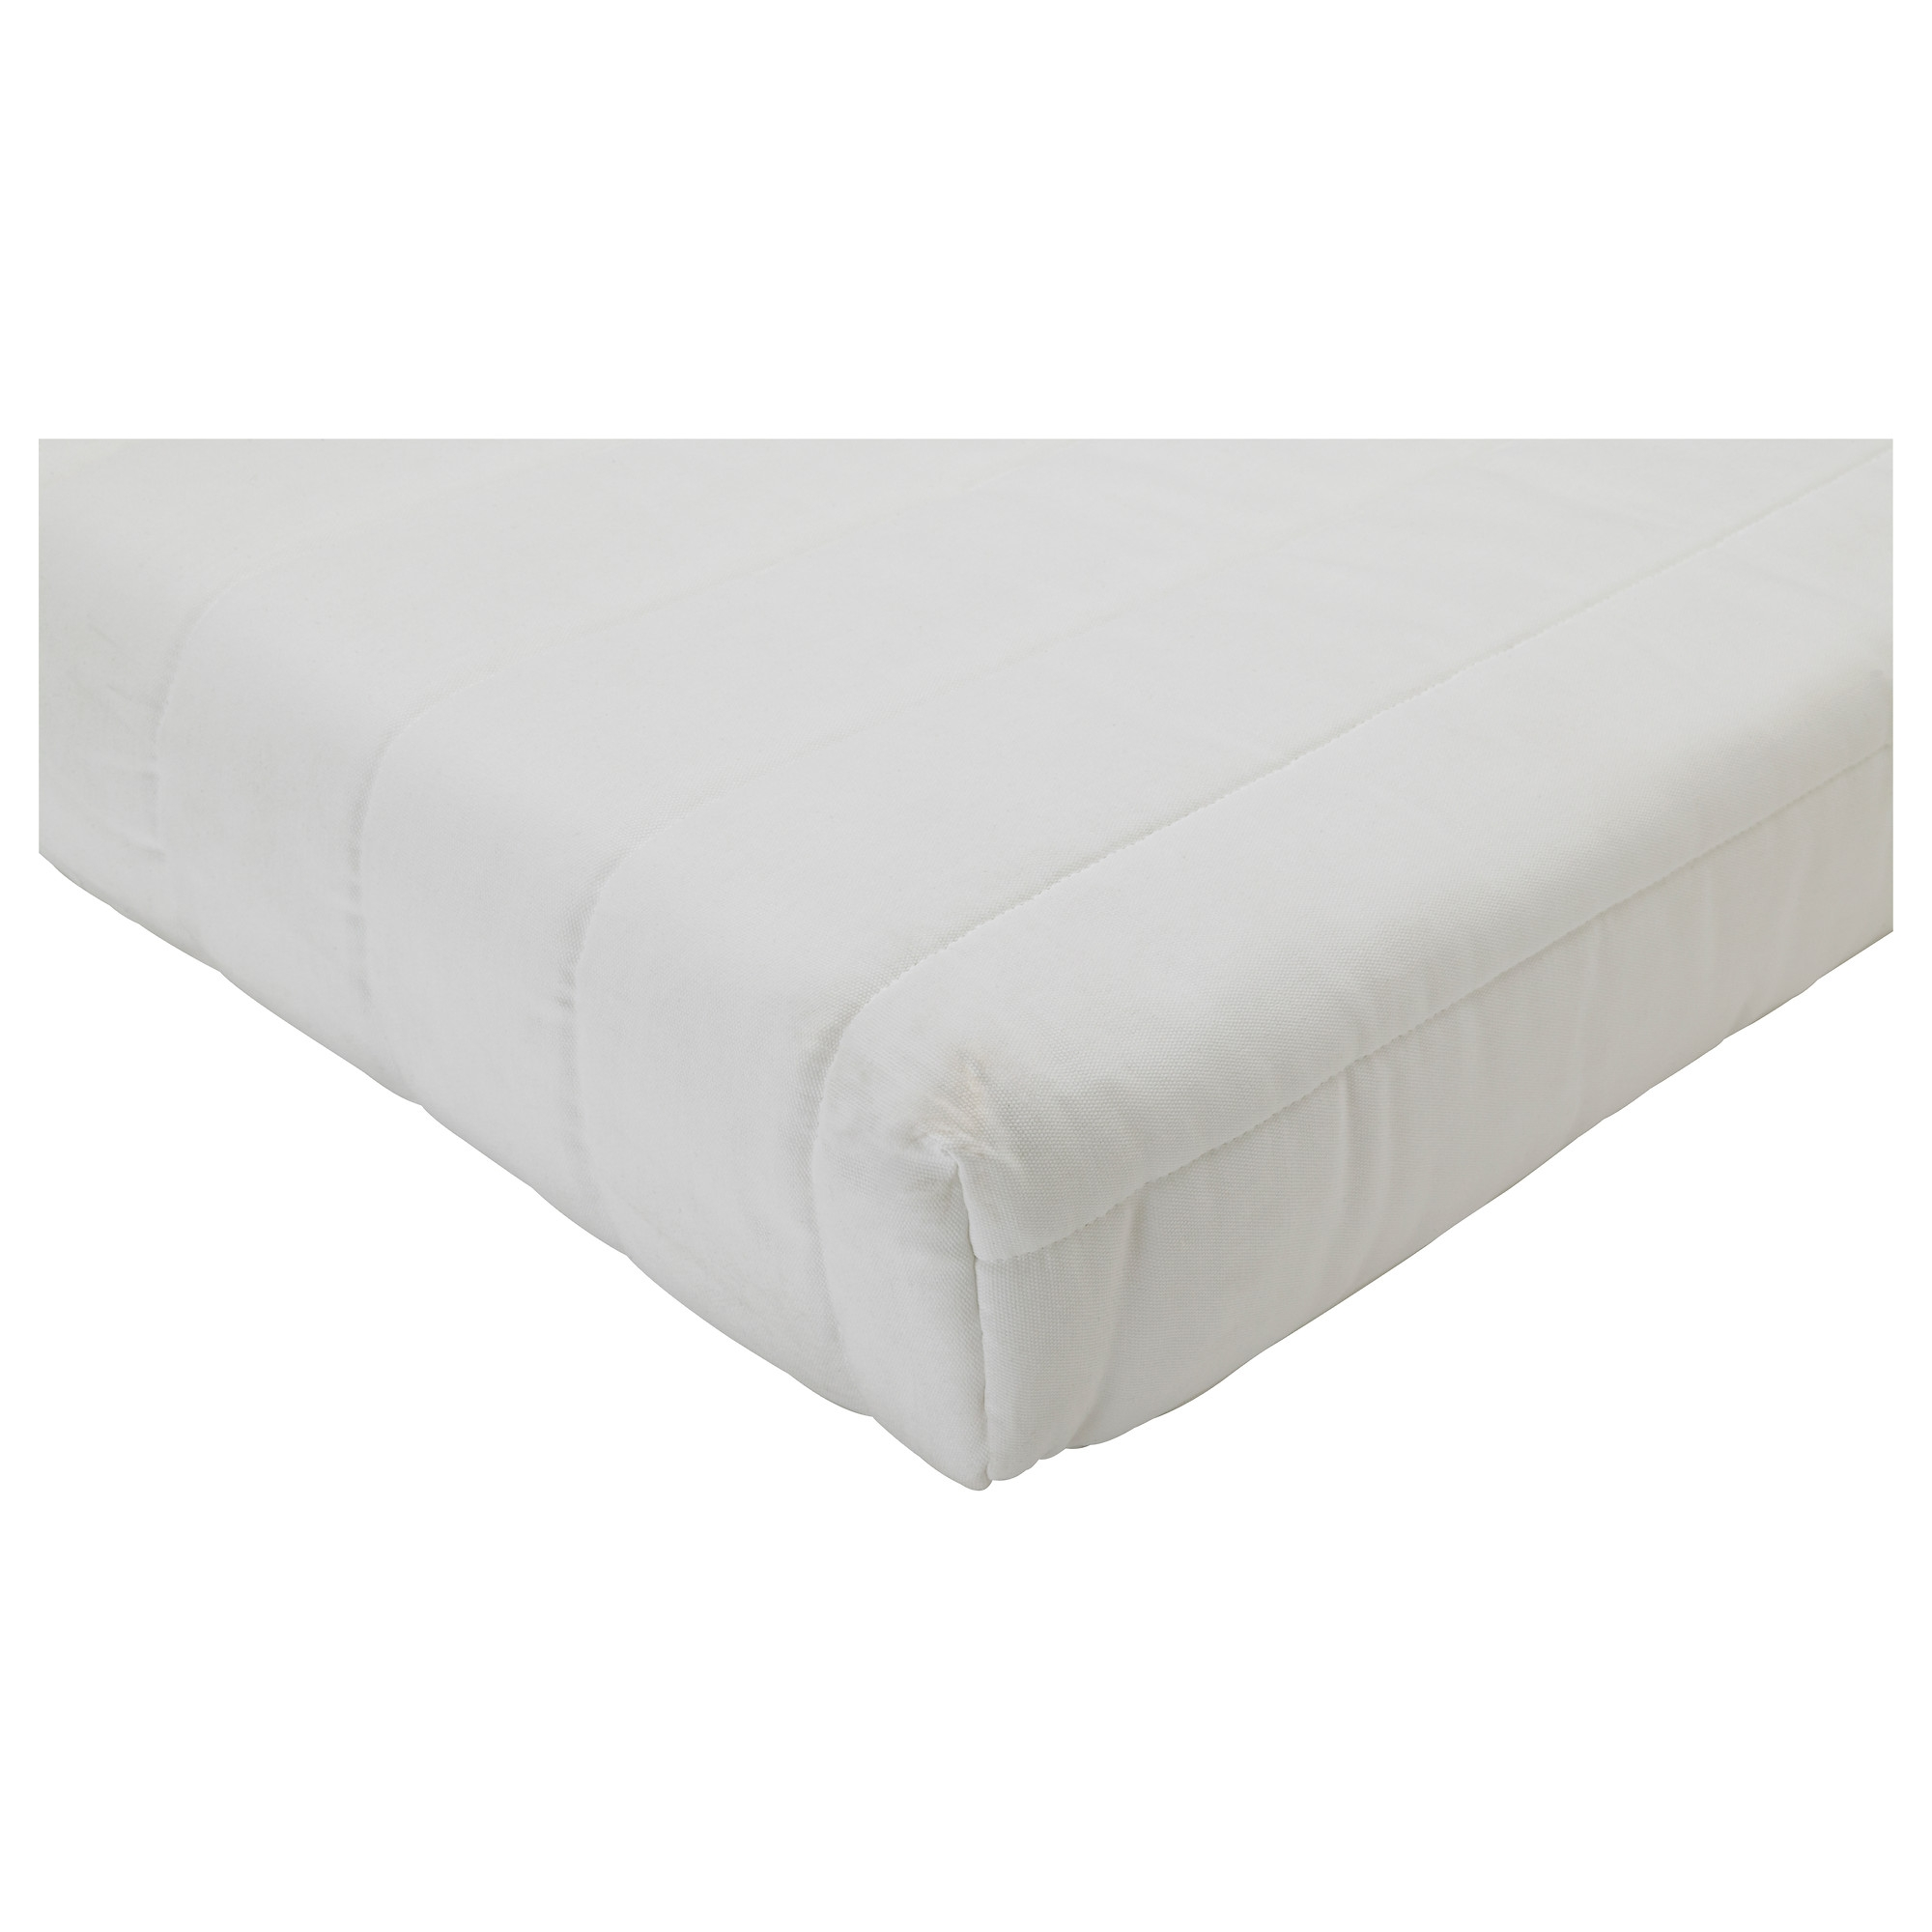 Foam Or Latex Mattresses Lycksele HÅvet Sofa Bed Foam Latex Mattress